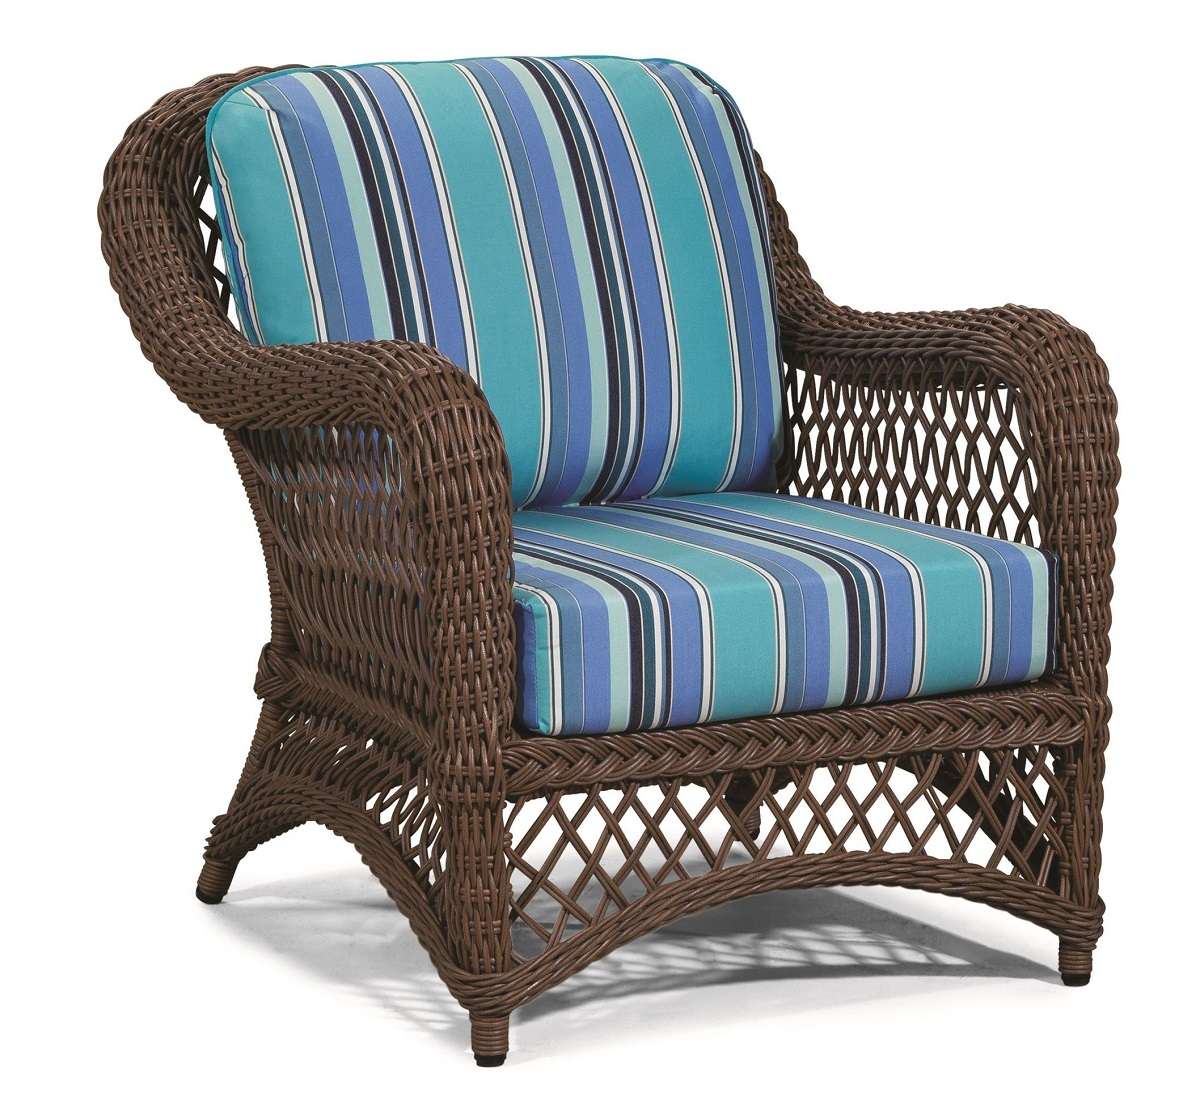 Rattan Outdoor Chairs Outdoor Wicker Chair Savannah